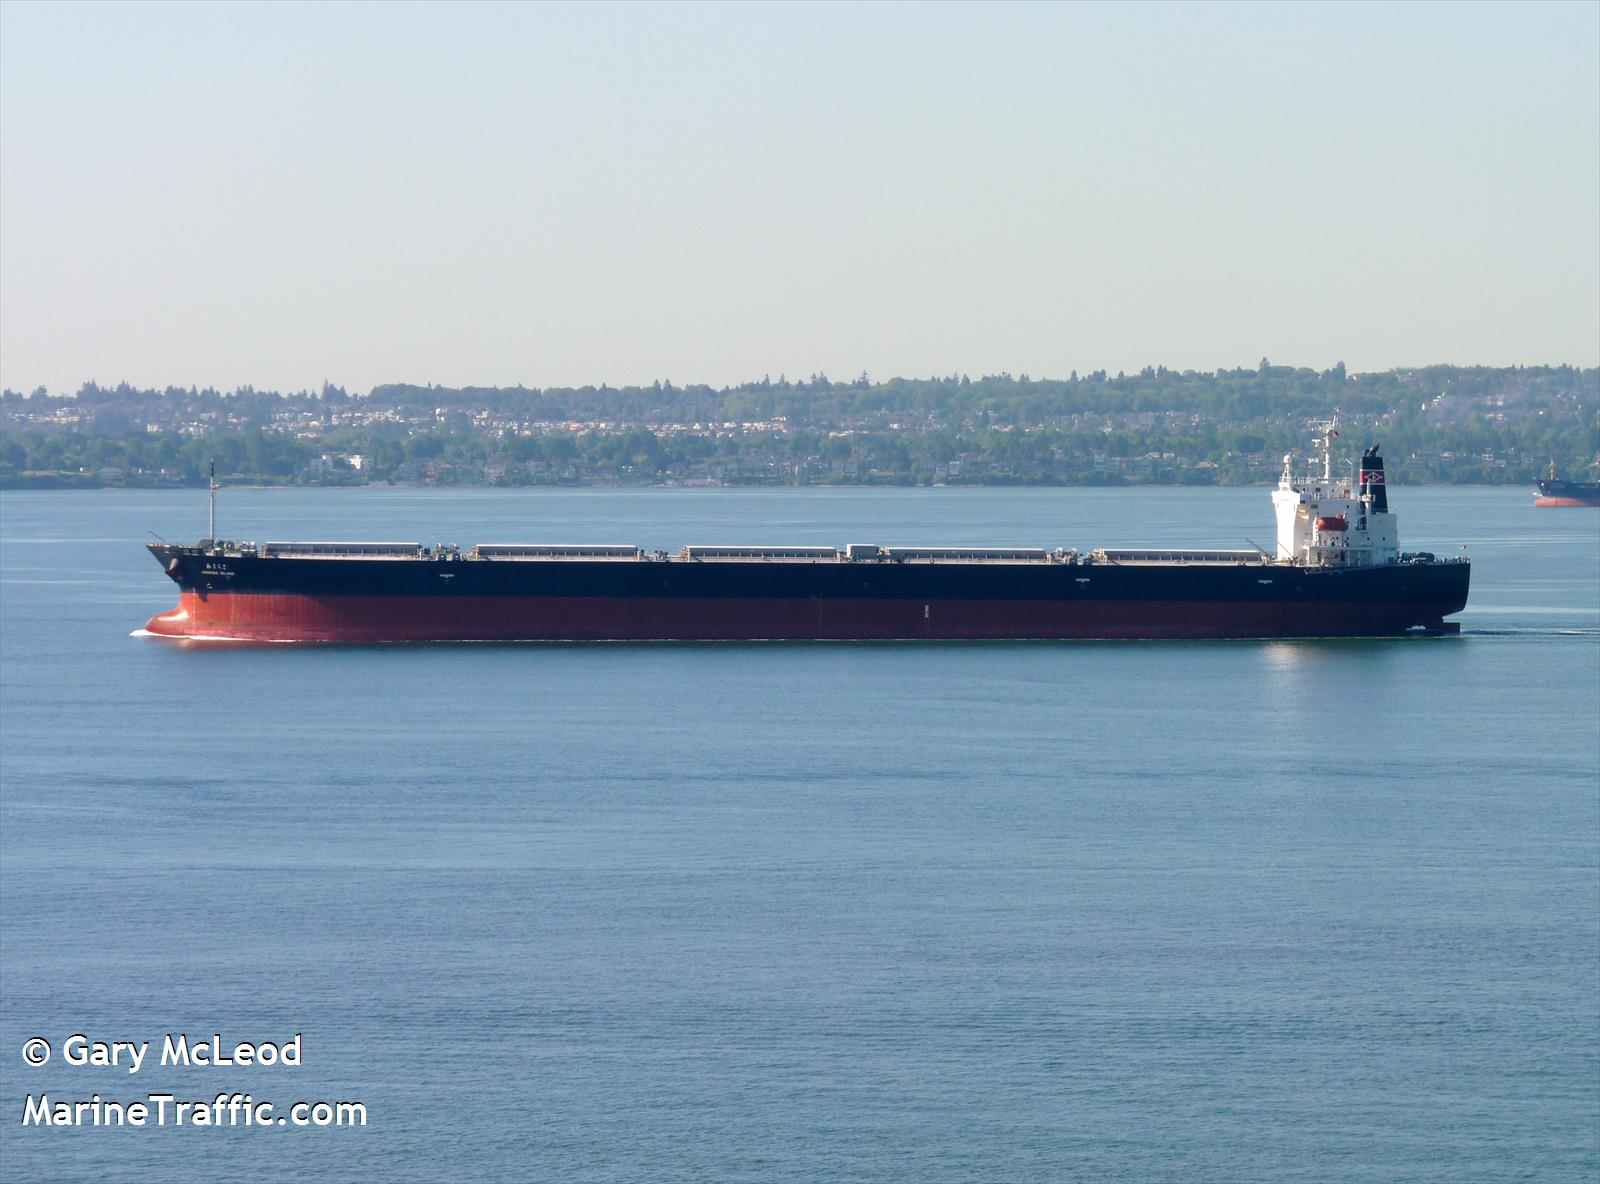 The bulk carrier Amakusa Island in Vancouver in 2010. (Photo courtesy Gary McLeod/MarineTraffic.com)